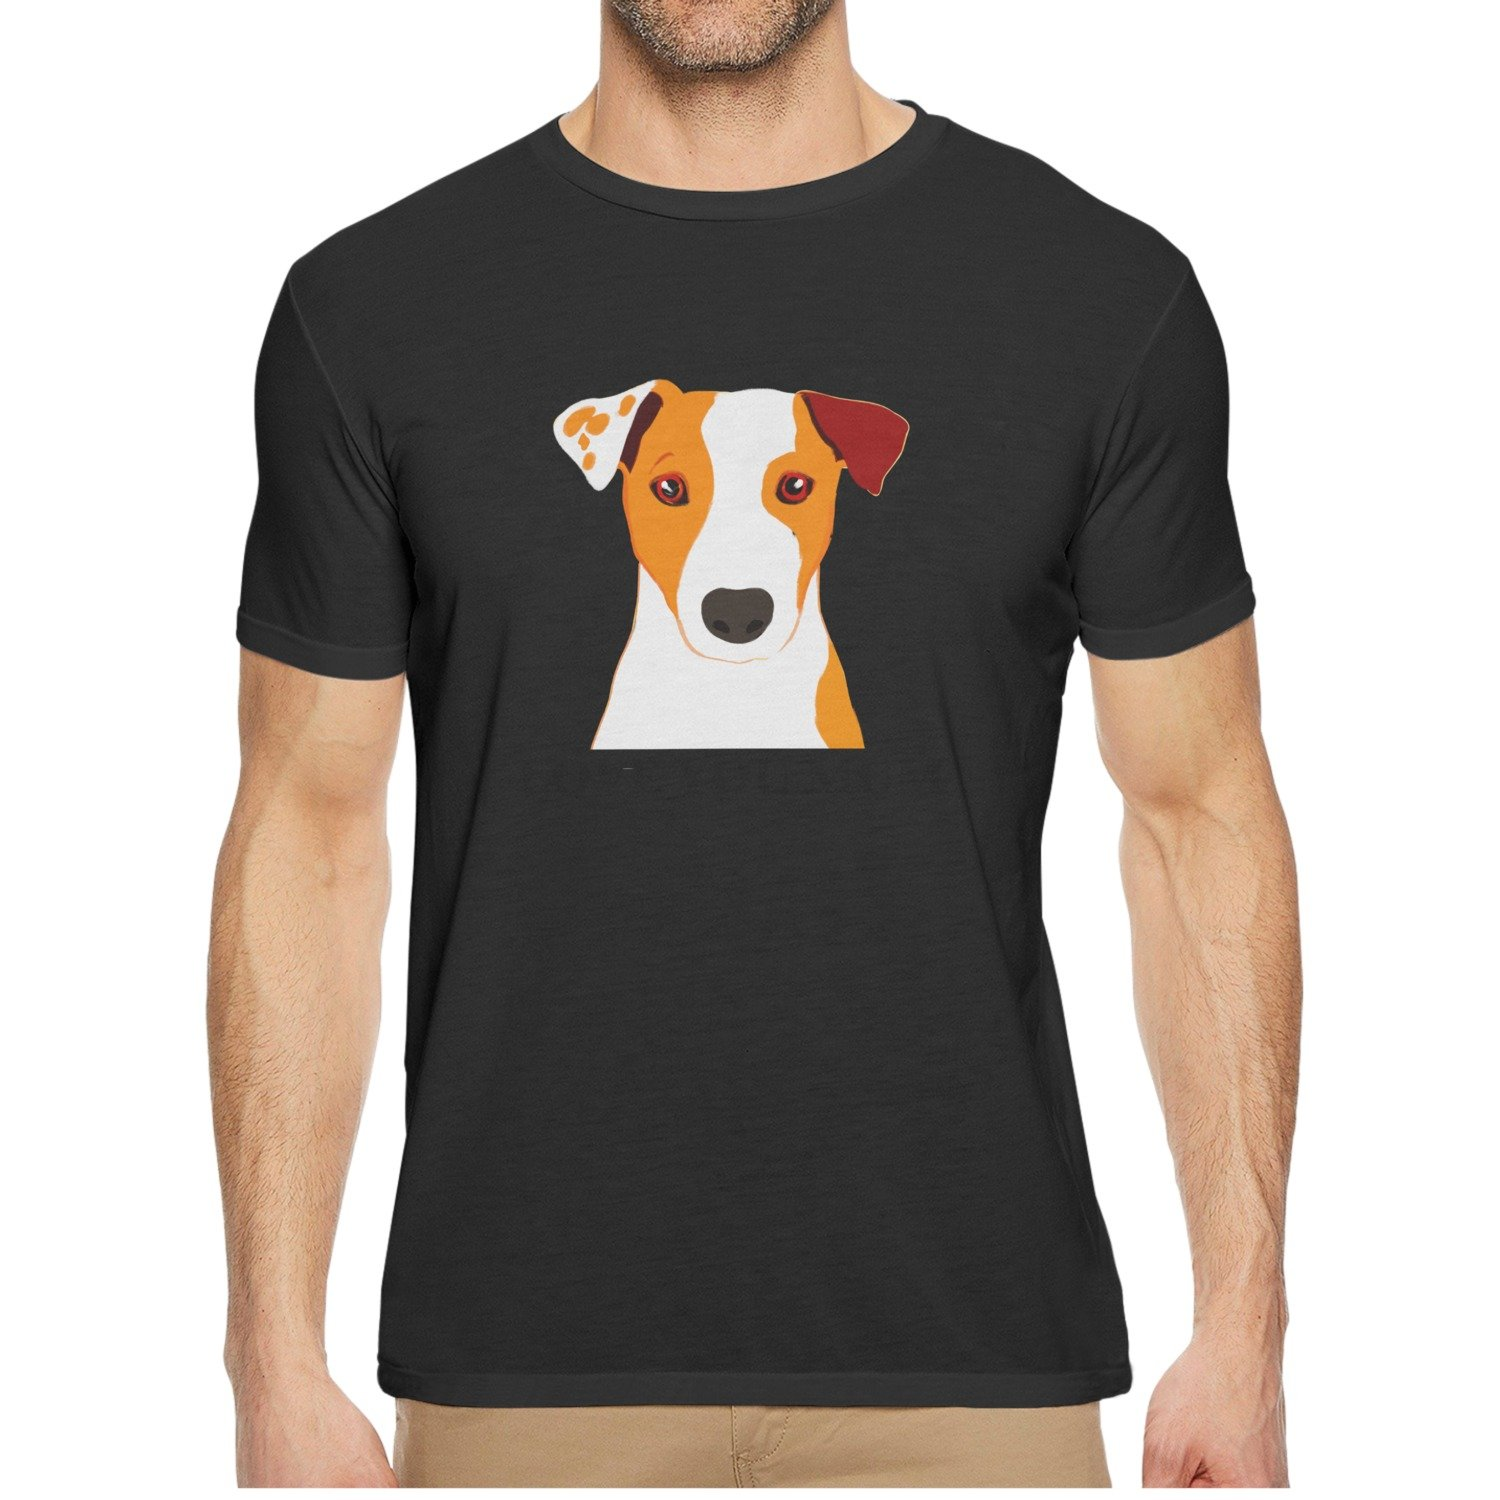 Qqppgg Jack Russell Terrier Dog 'Love You Mum' Coffee Mens Short Sleeve Breathable Shirts